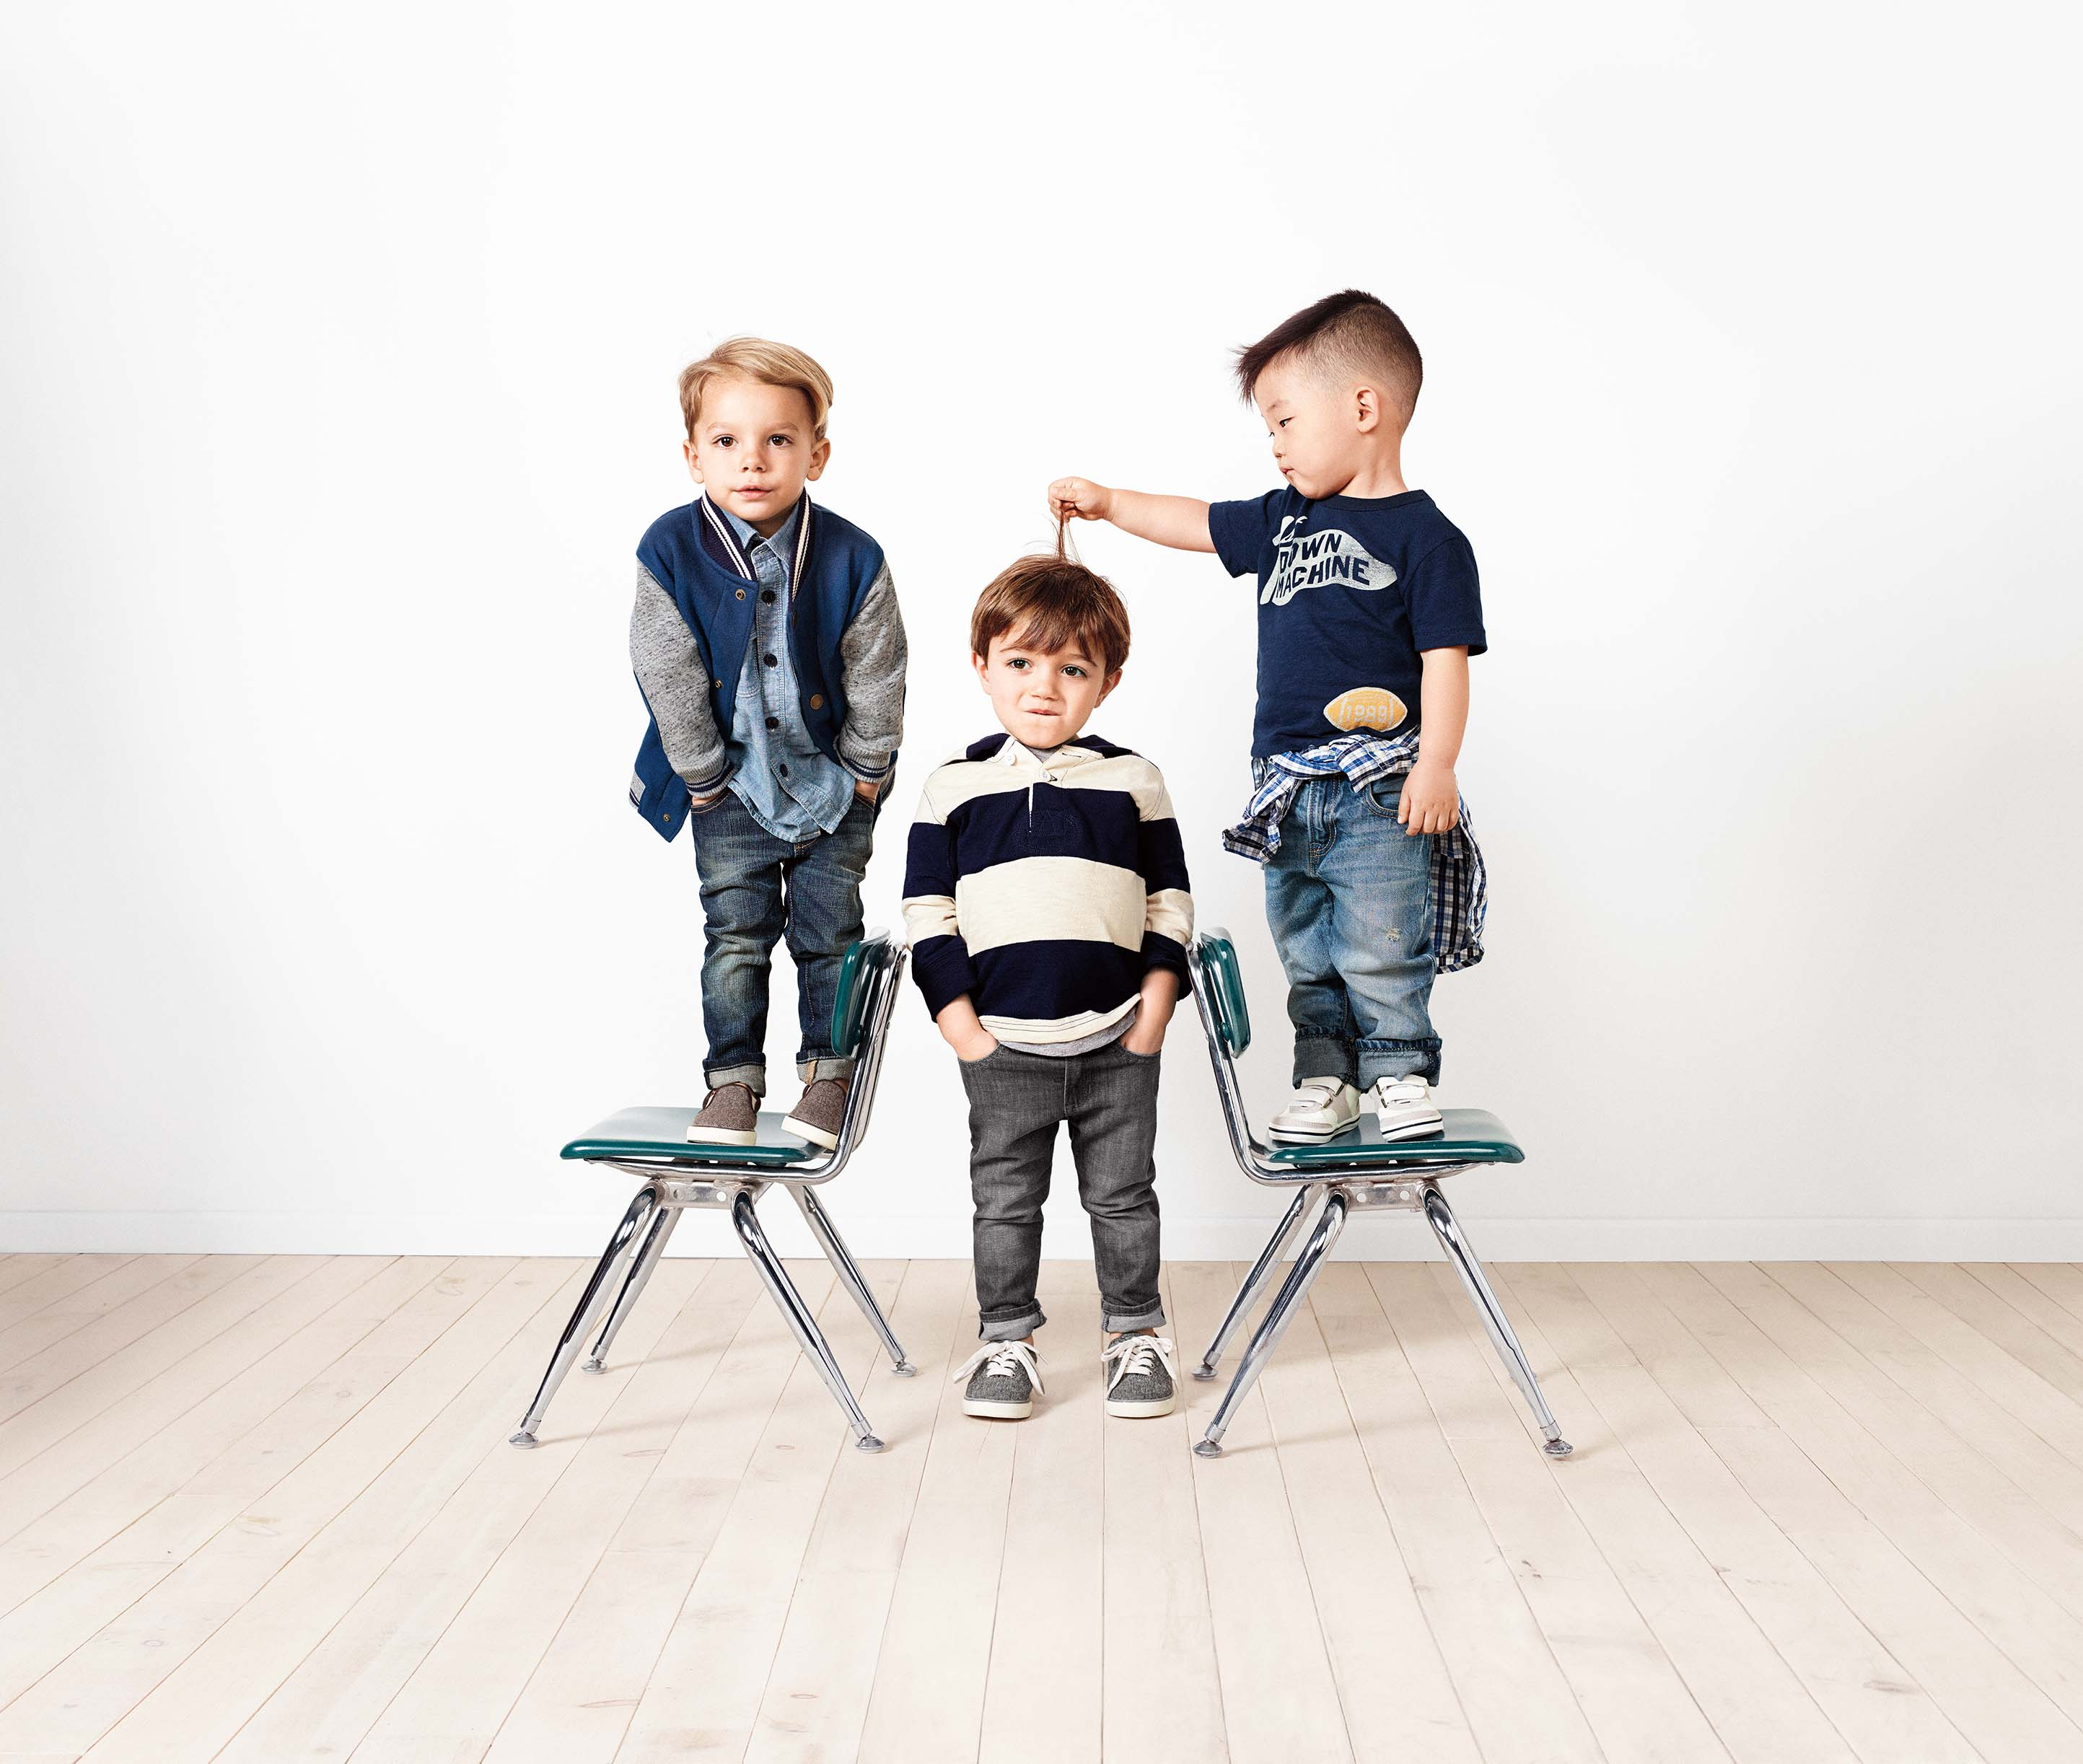 Gapkids Looks To The Internet To Find Their Next Campaign